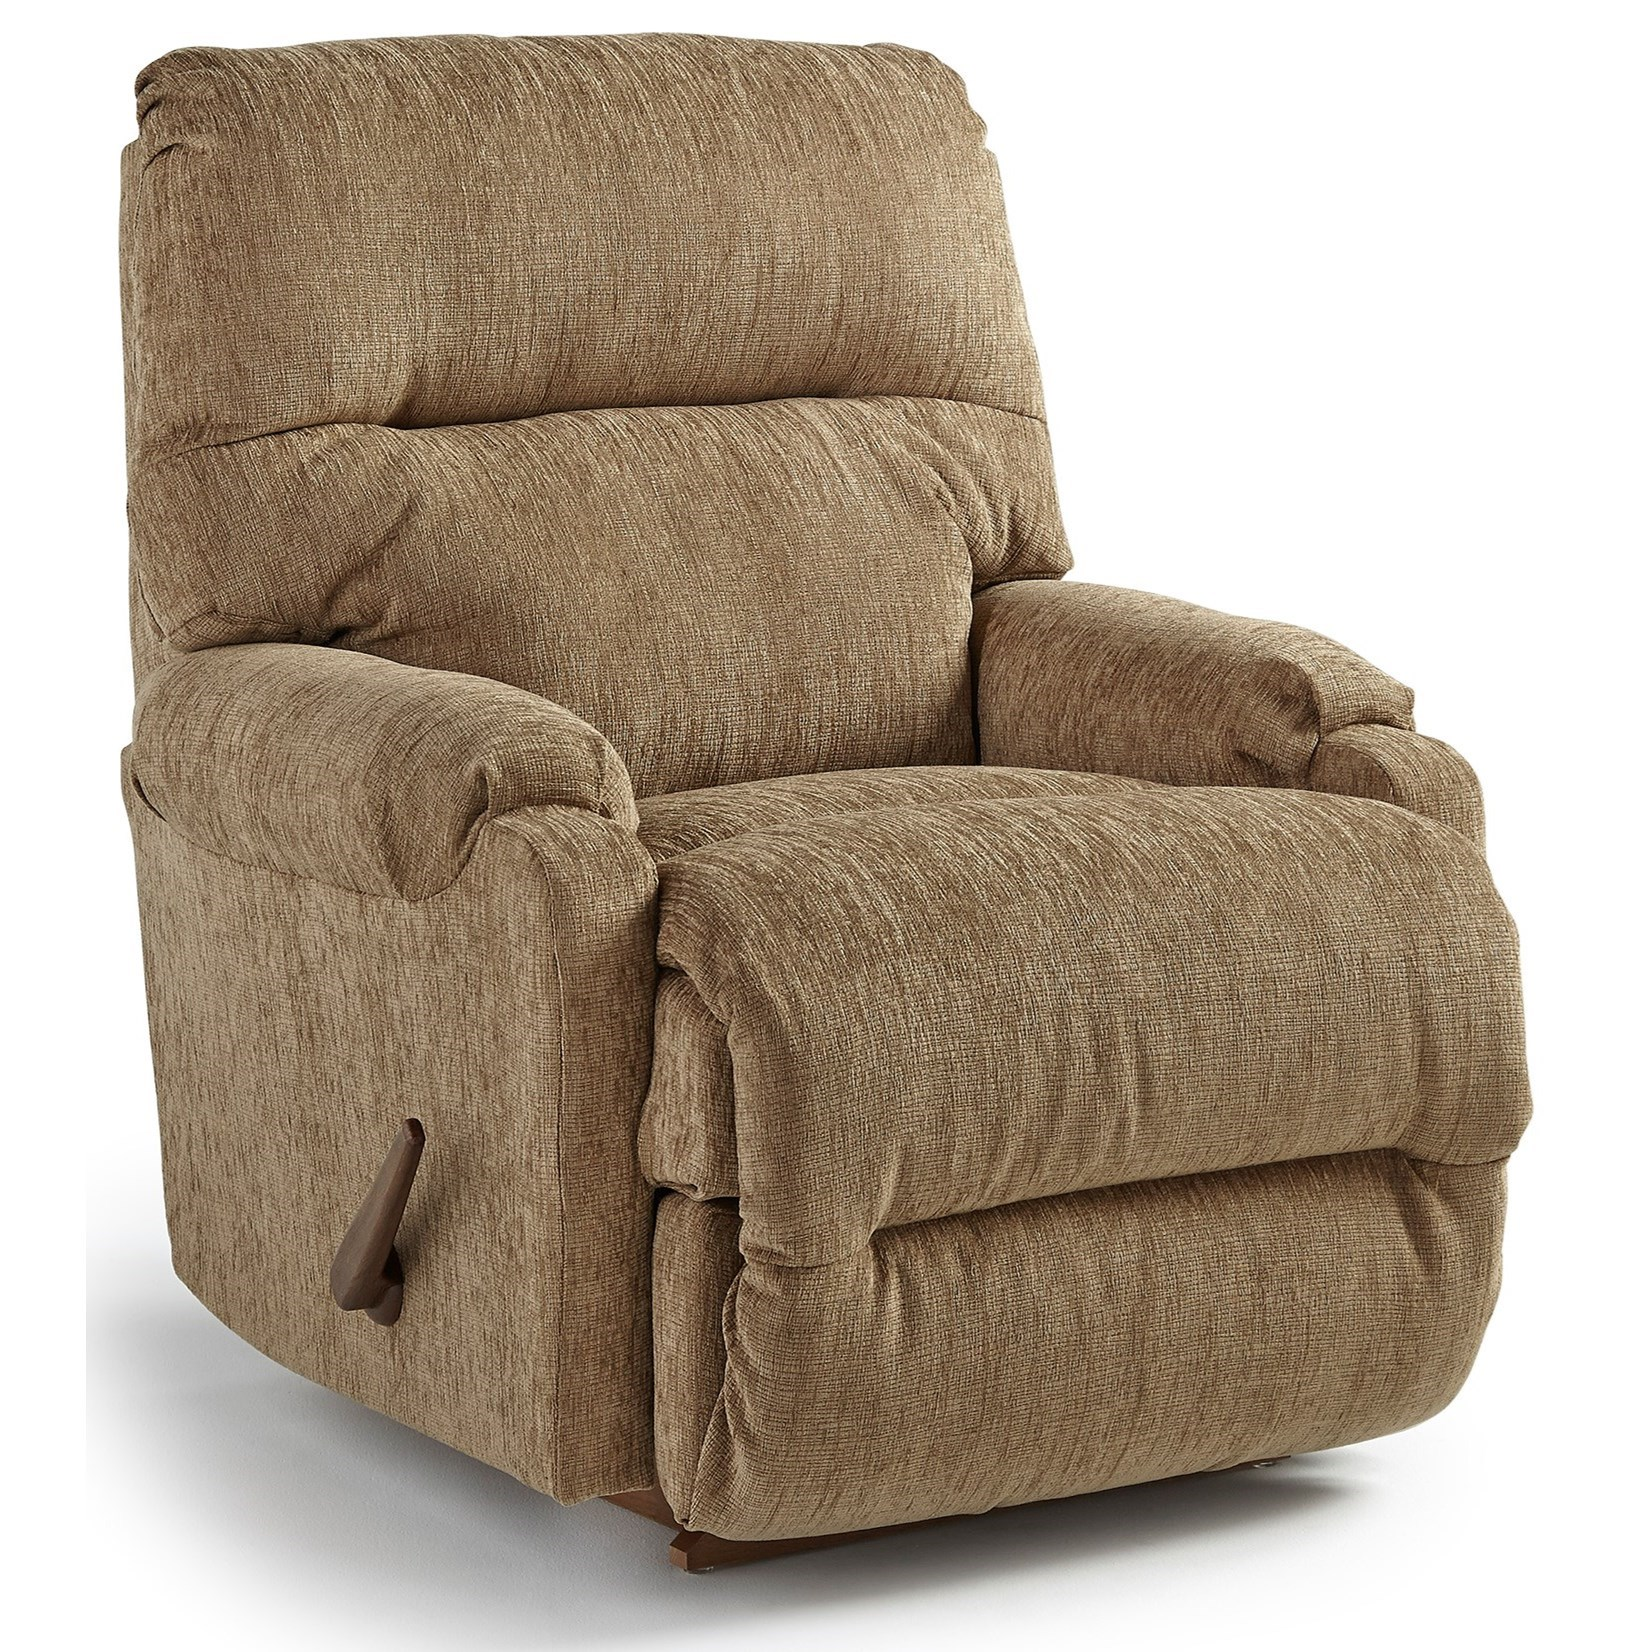 zerogravity pc zero chair power ergocentric recline recliners gravity product petite recliner perfect